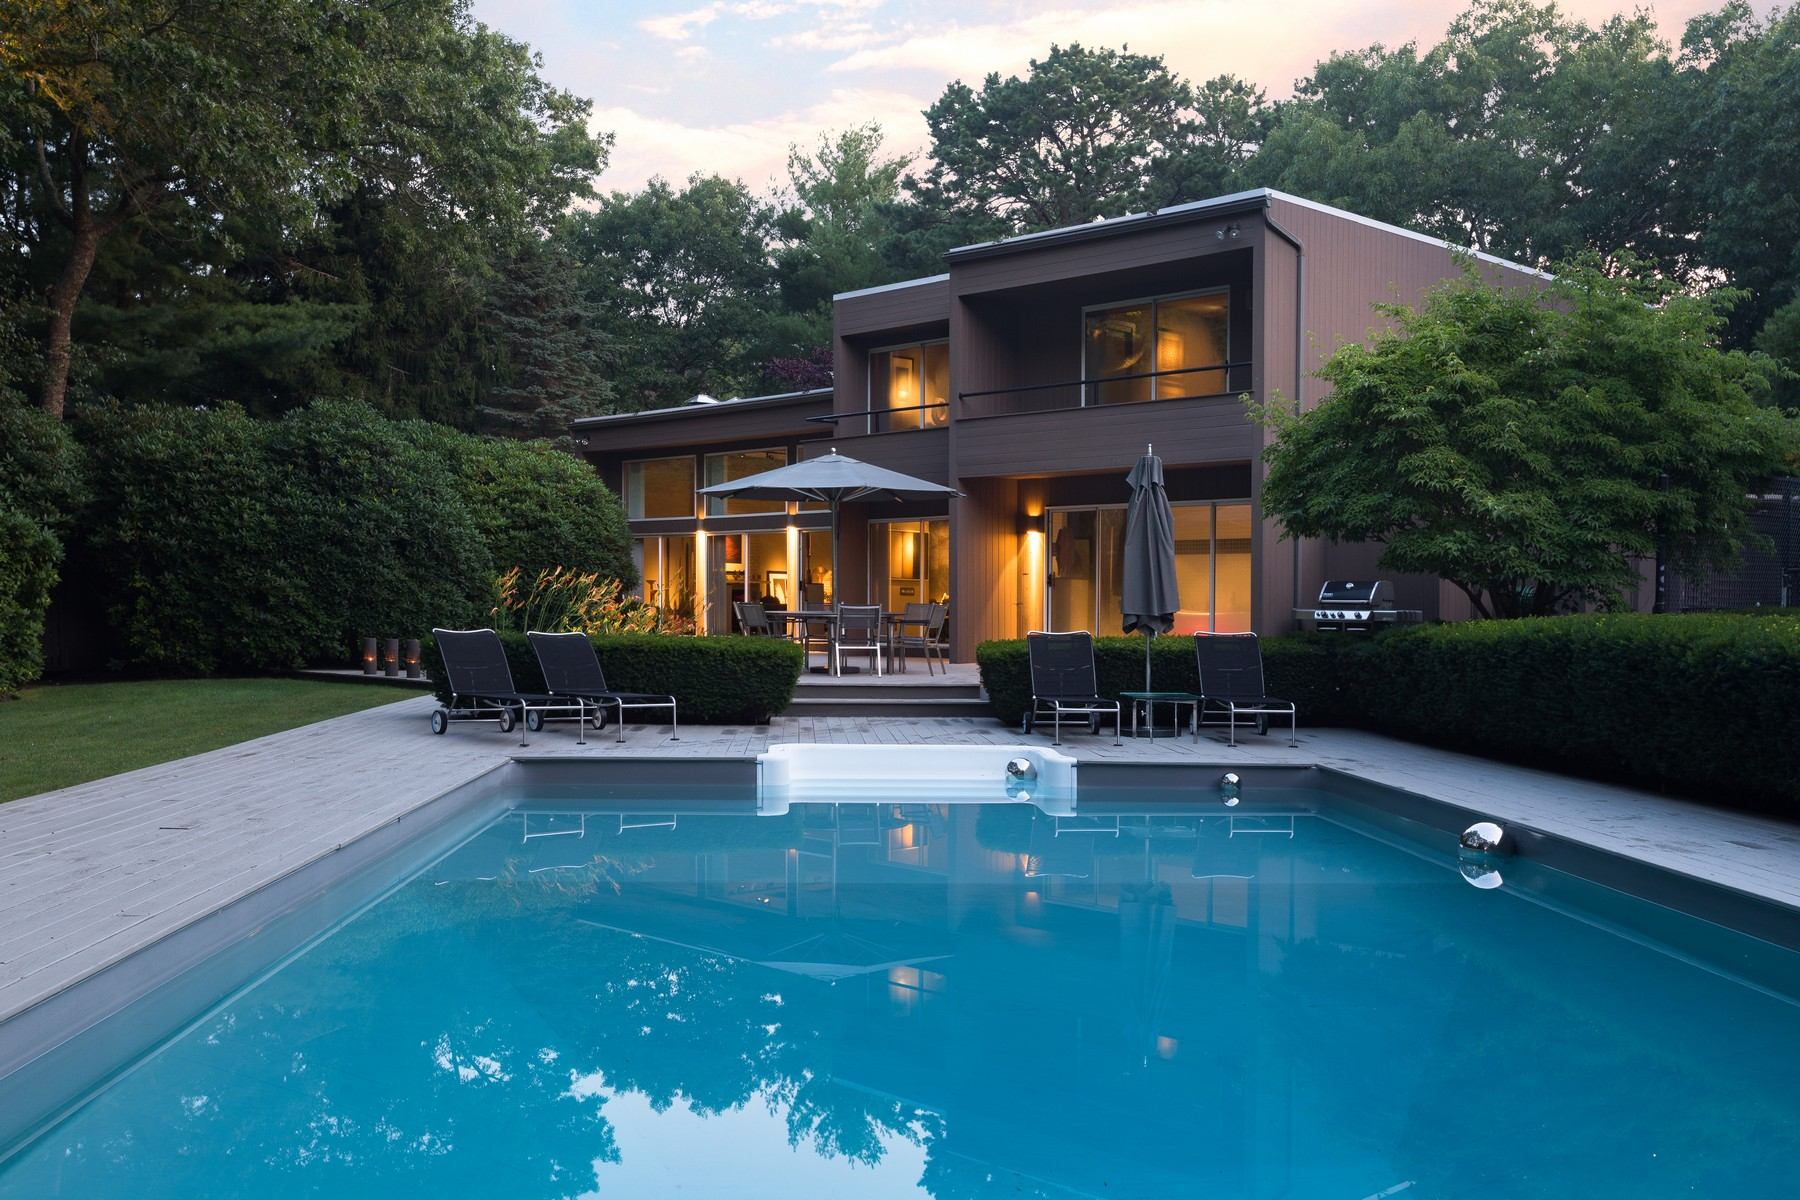 Single Family Homes for Sale at Quogue 9 Bluejay Way East Quogue, New York 11942 United States